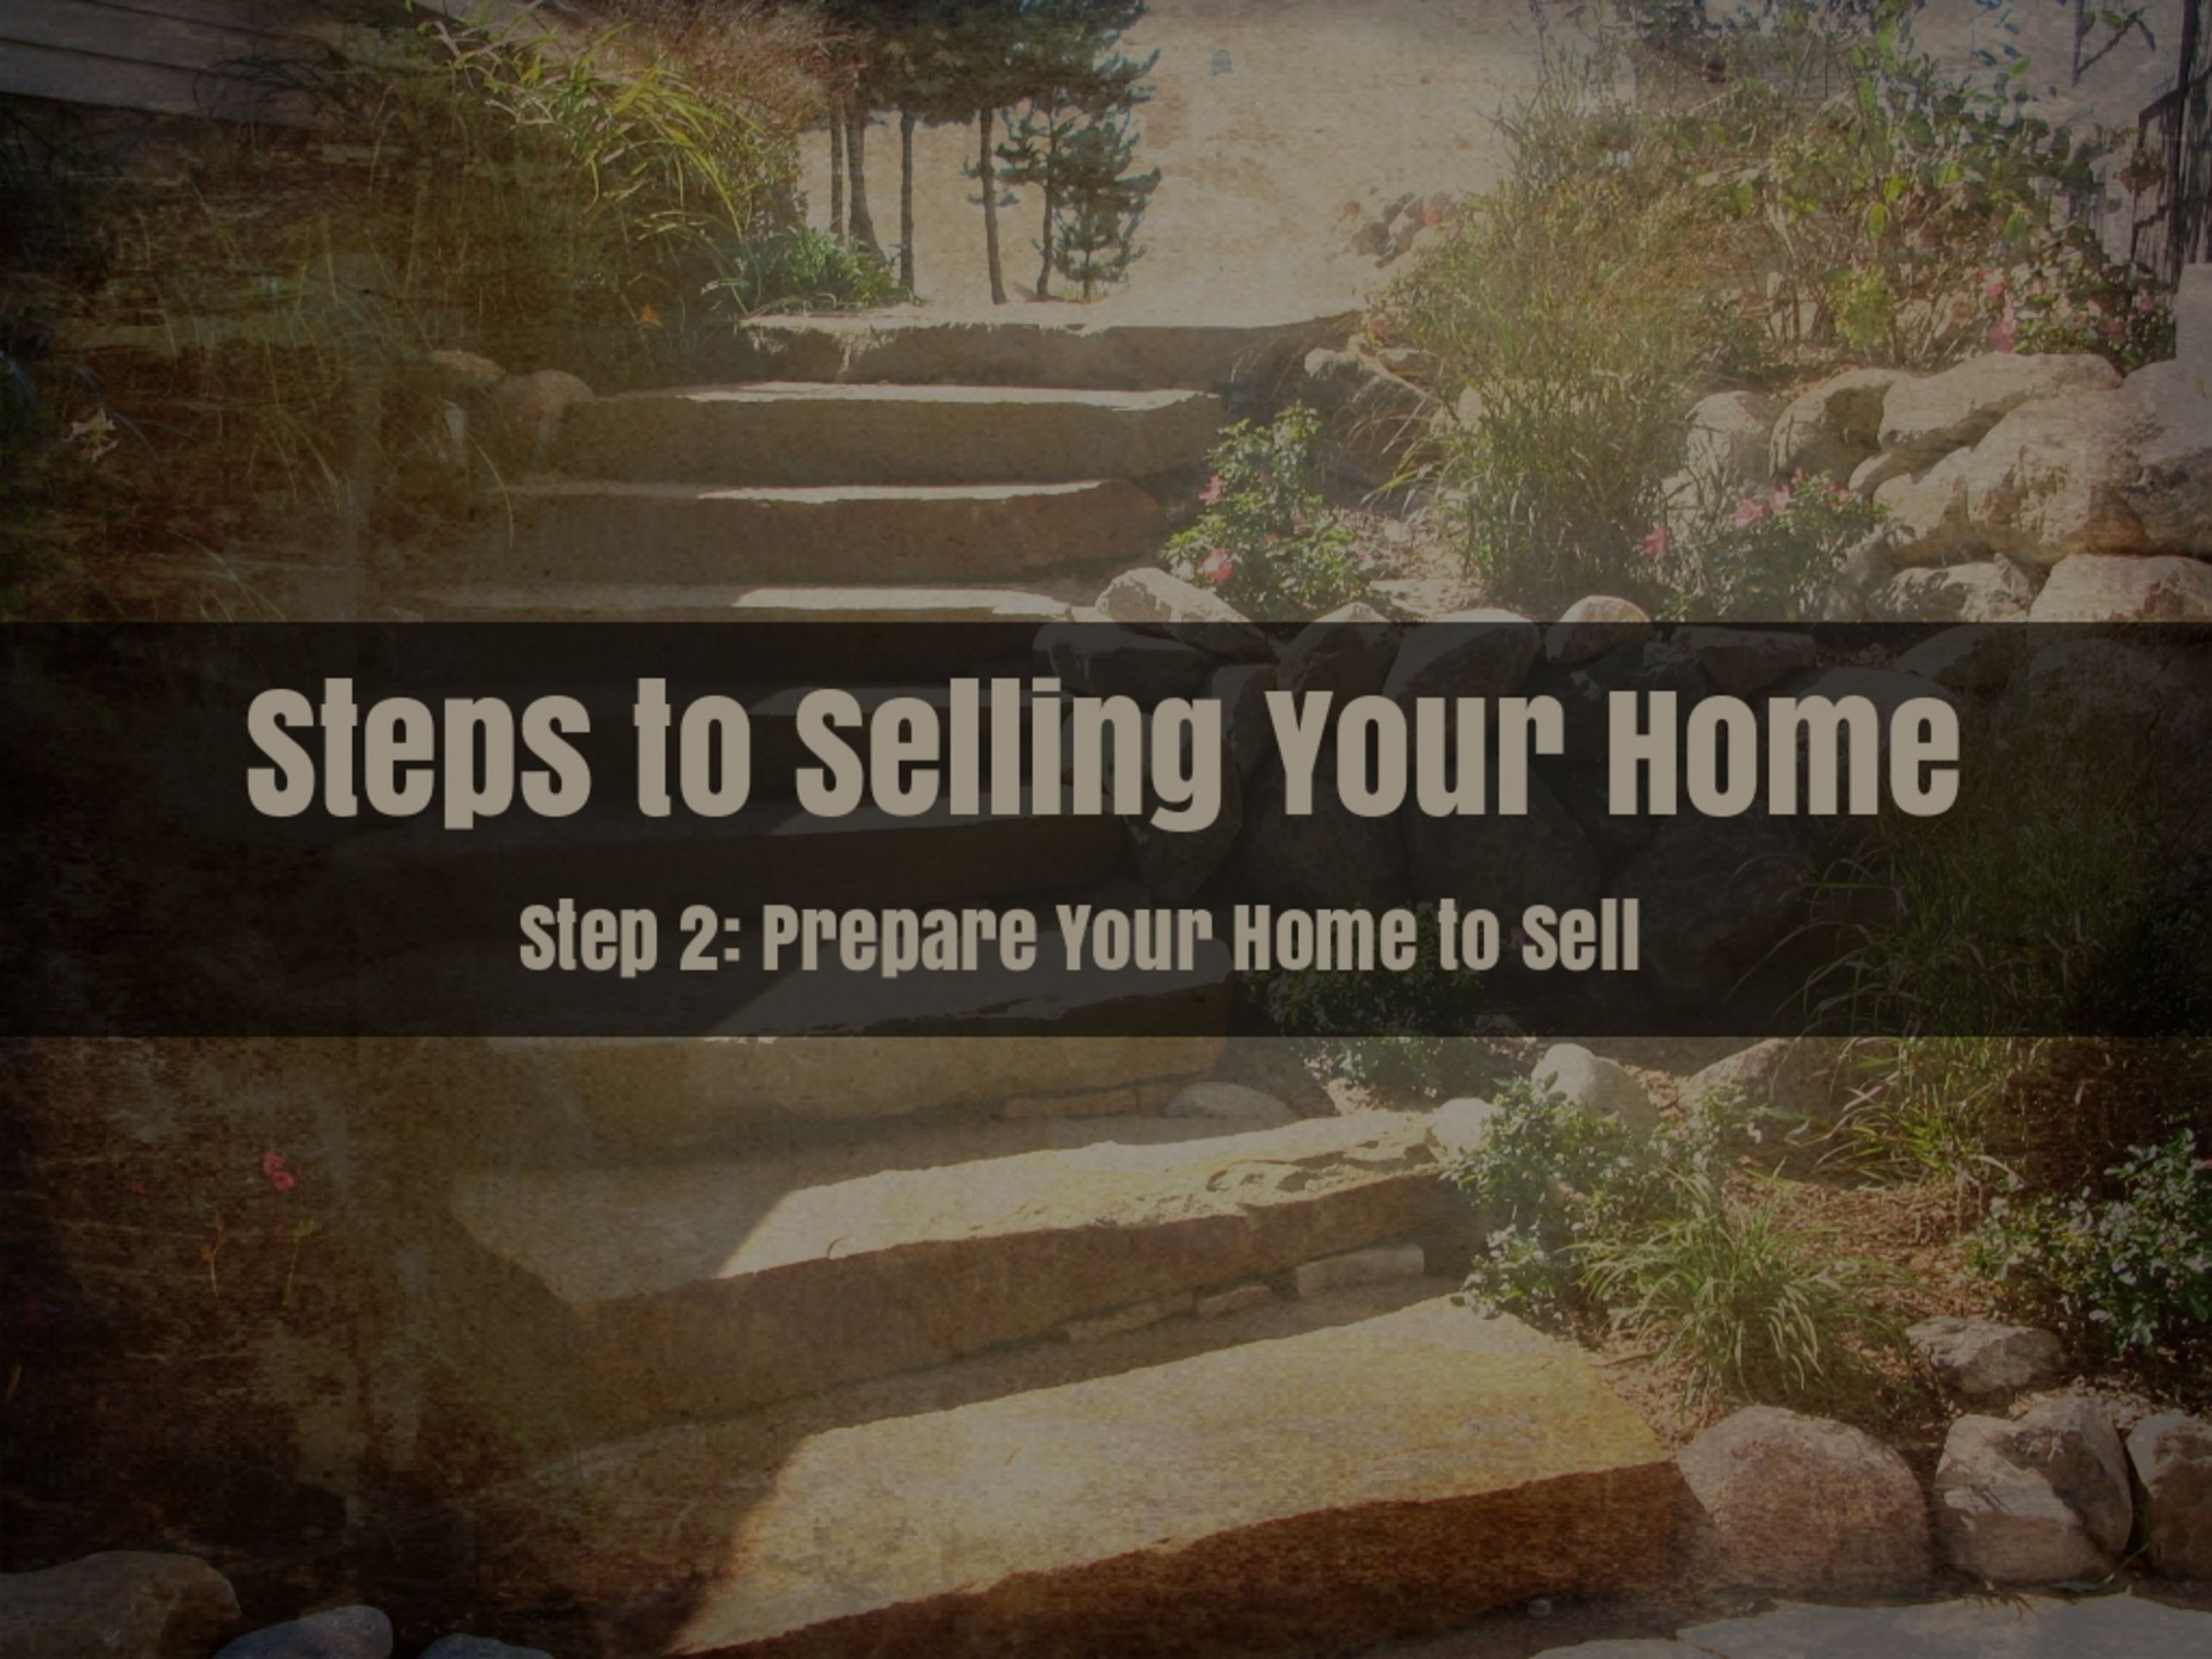 Step 2 – Prepare Your Home to Sell